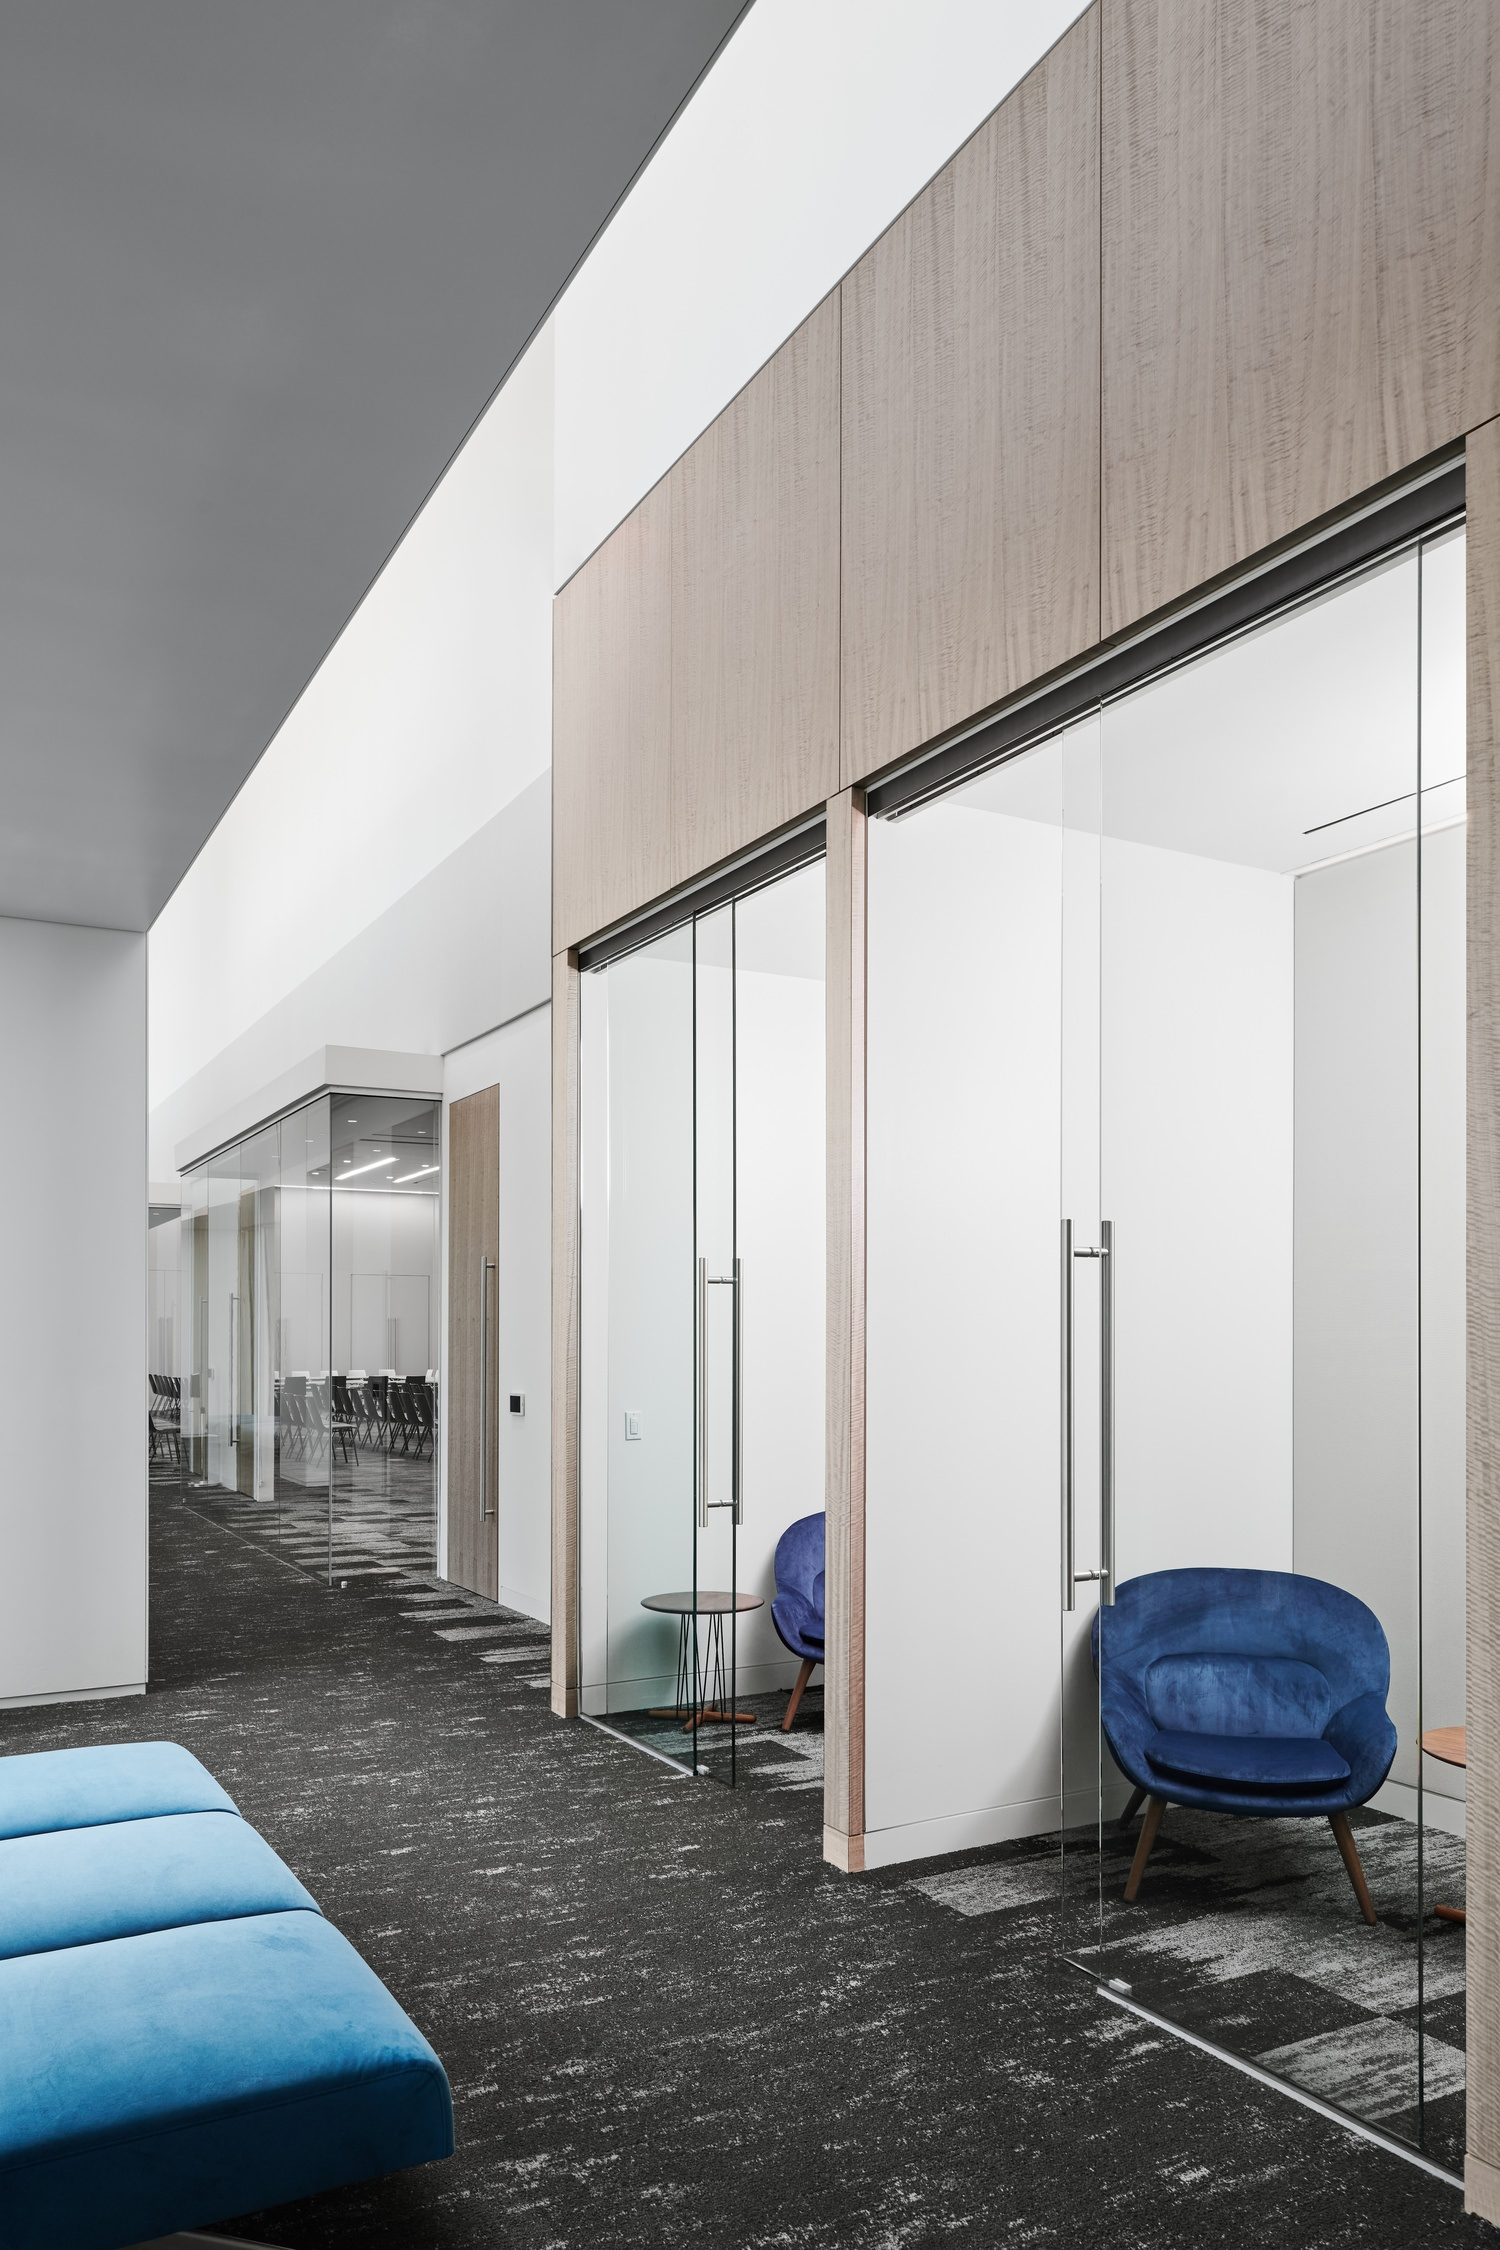 A room that has a blue chair in it and then there are small working areas with glass doors.